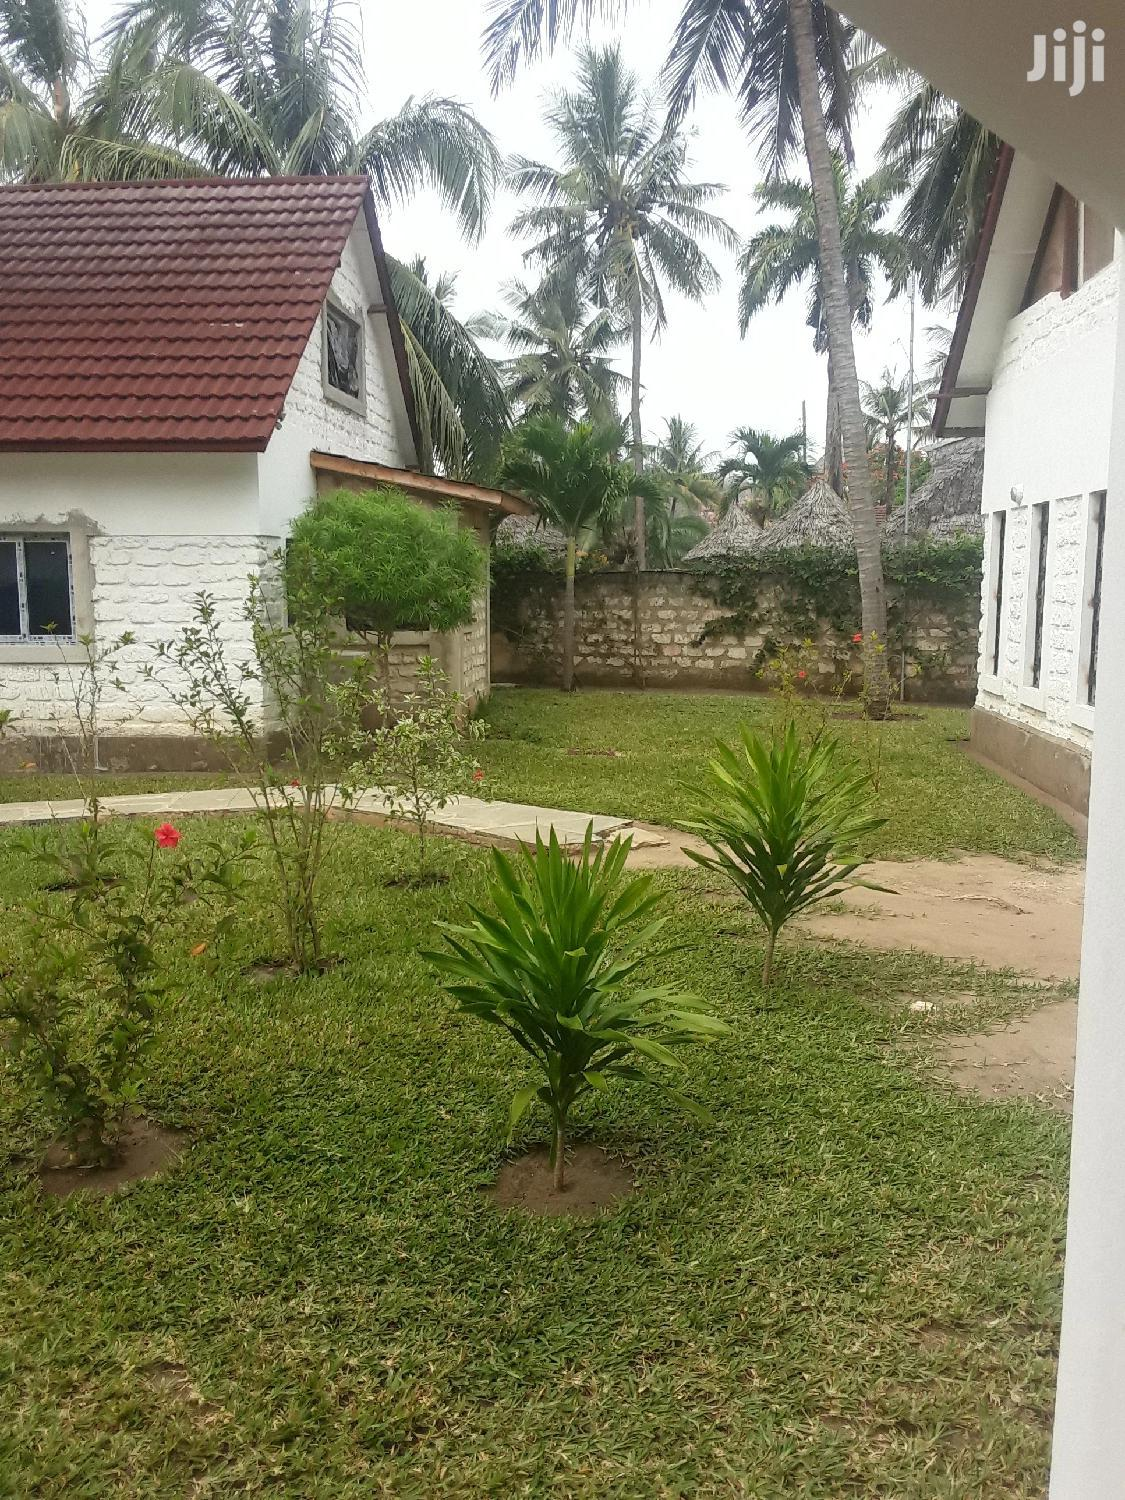 Archive: Beach Villas And Apartments For Let In Diani Beach.